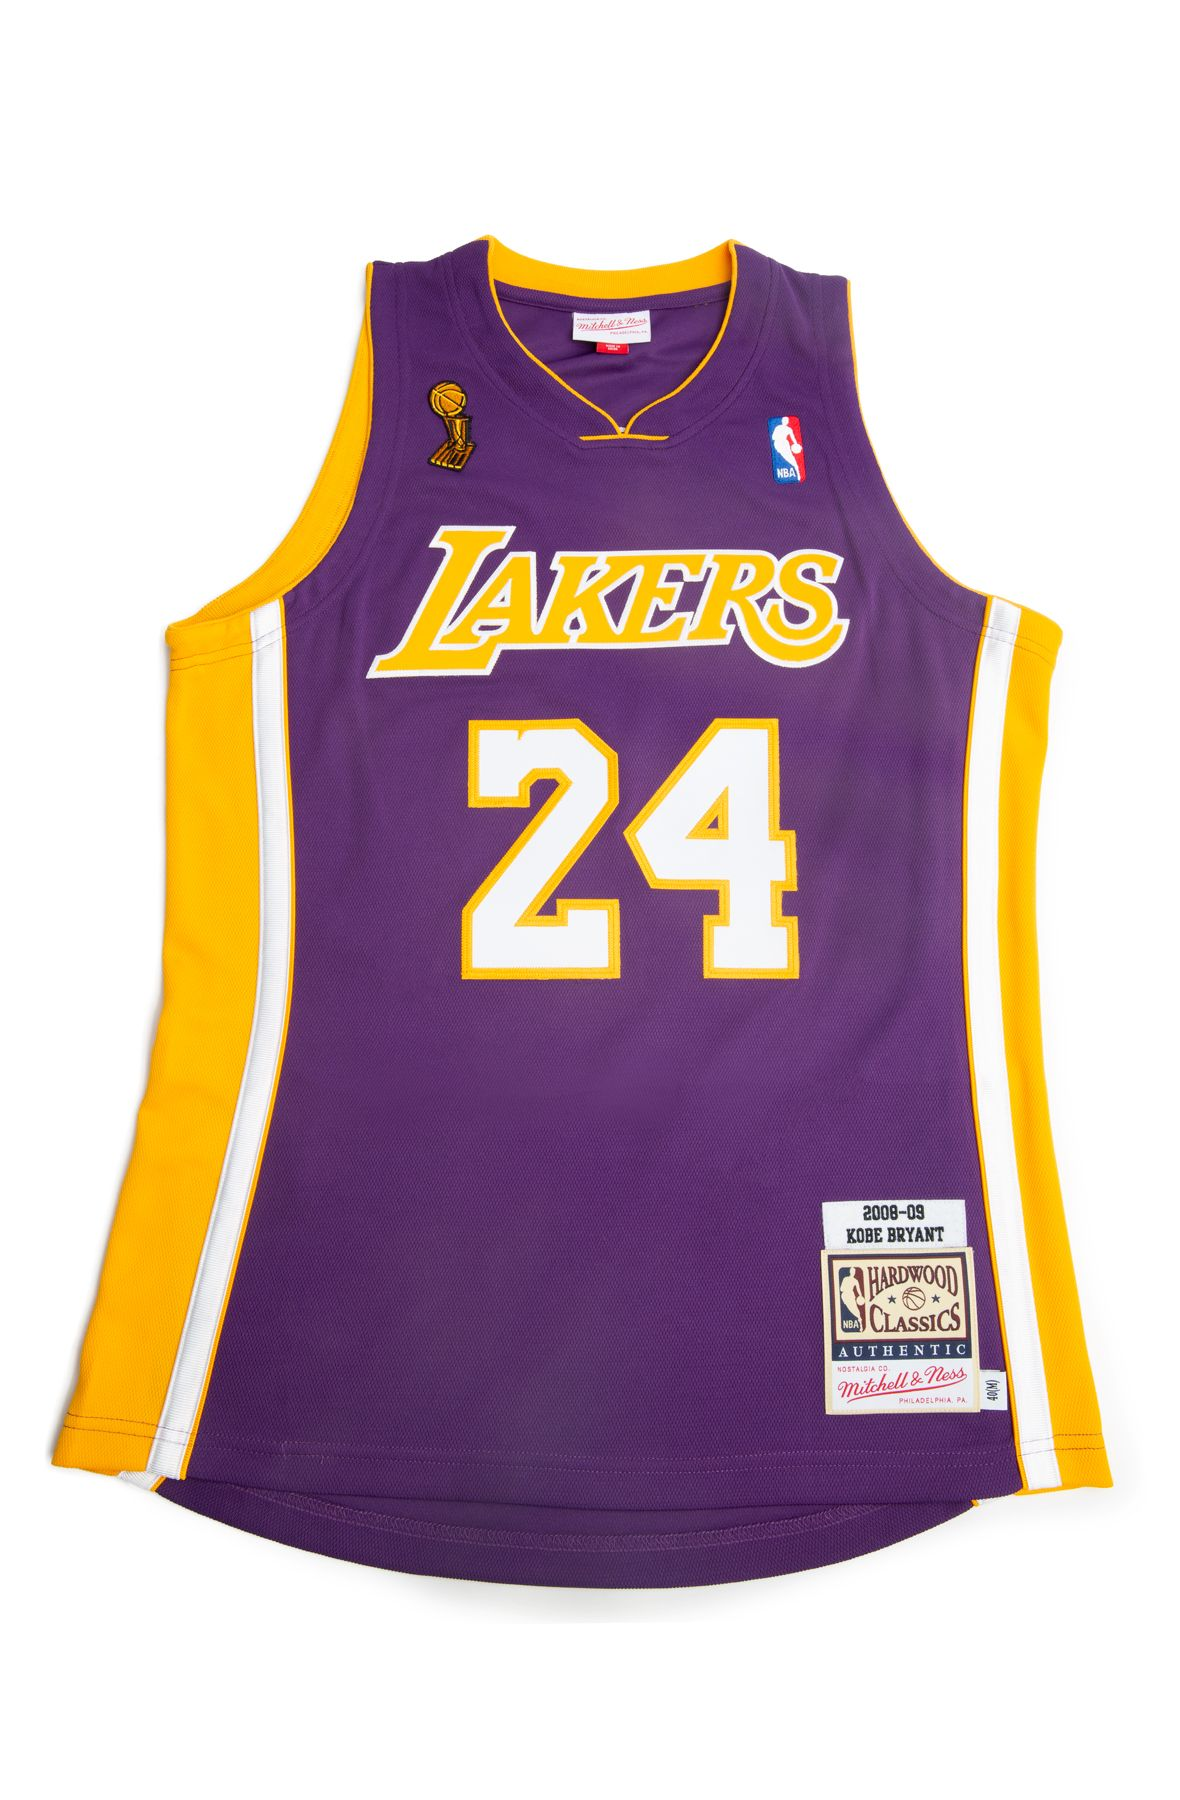 LOS ANGELES LAKERS KOBE BRYANT 2008-09 ROAD FINALS AUTHENTIC JERSEY